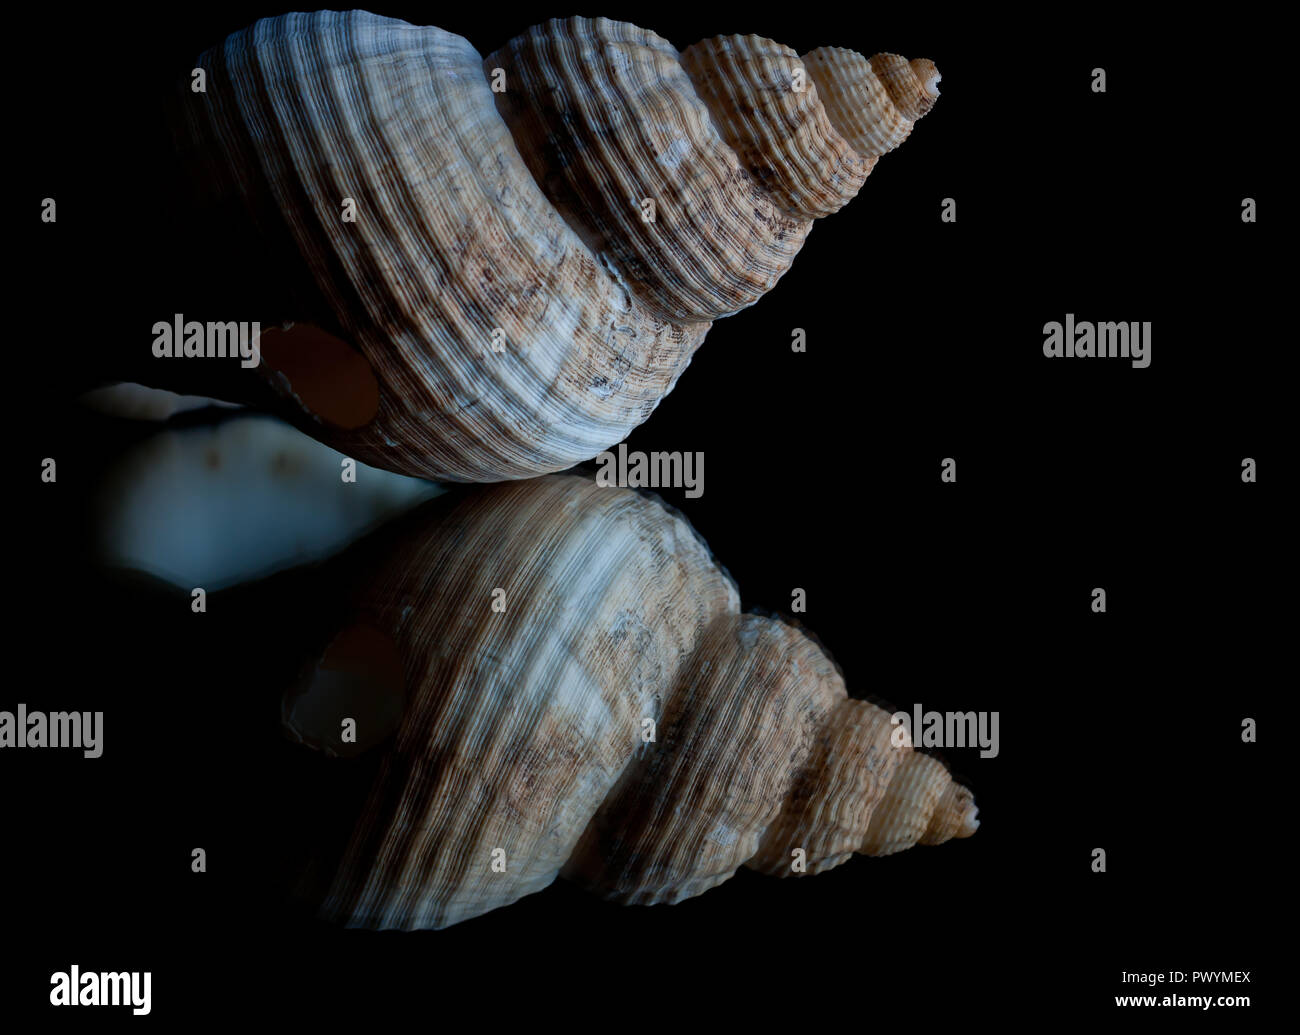 High contrast image and reflection of a seashell with black background and space for text Stock Photo